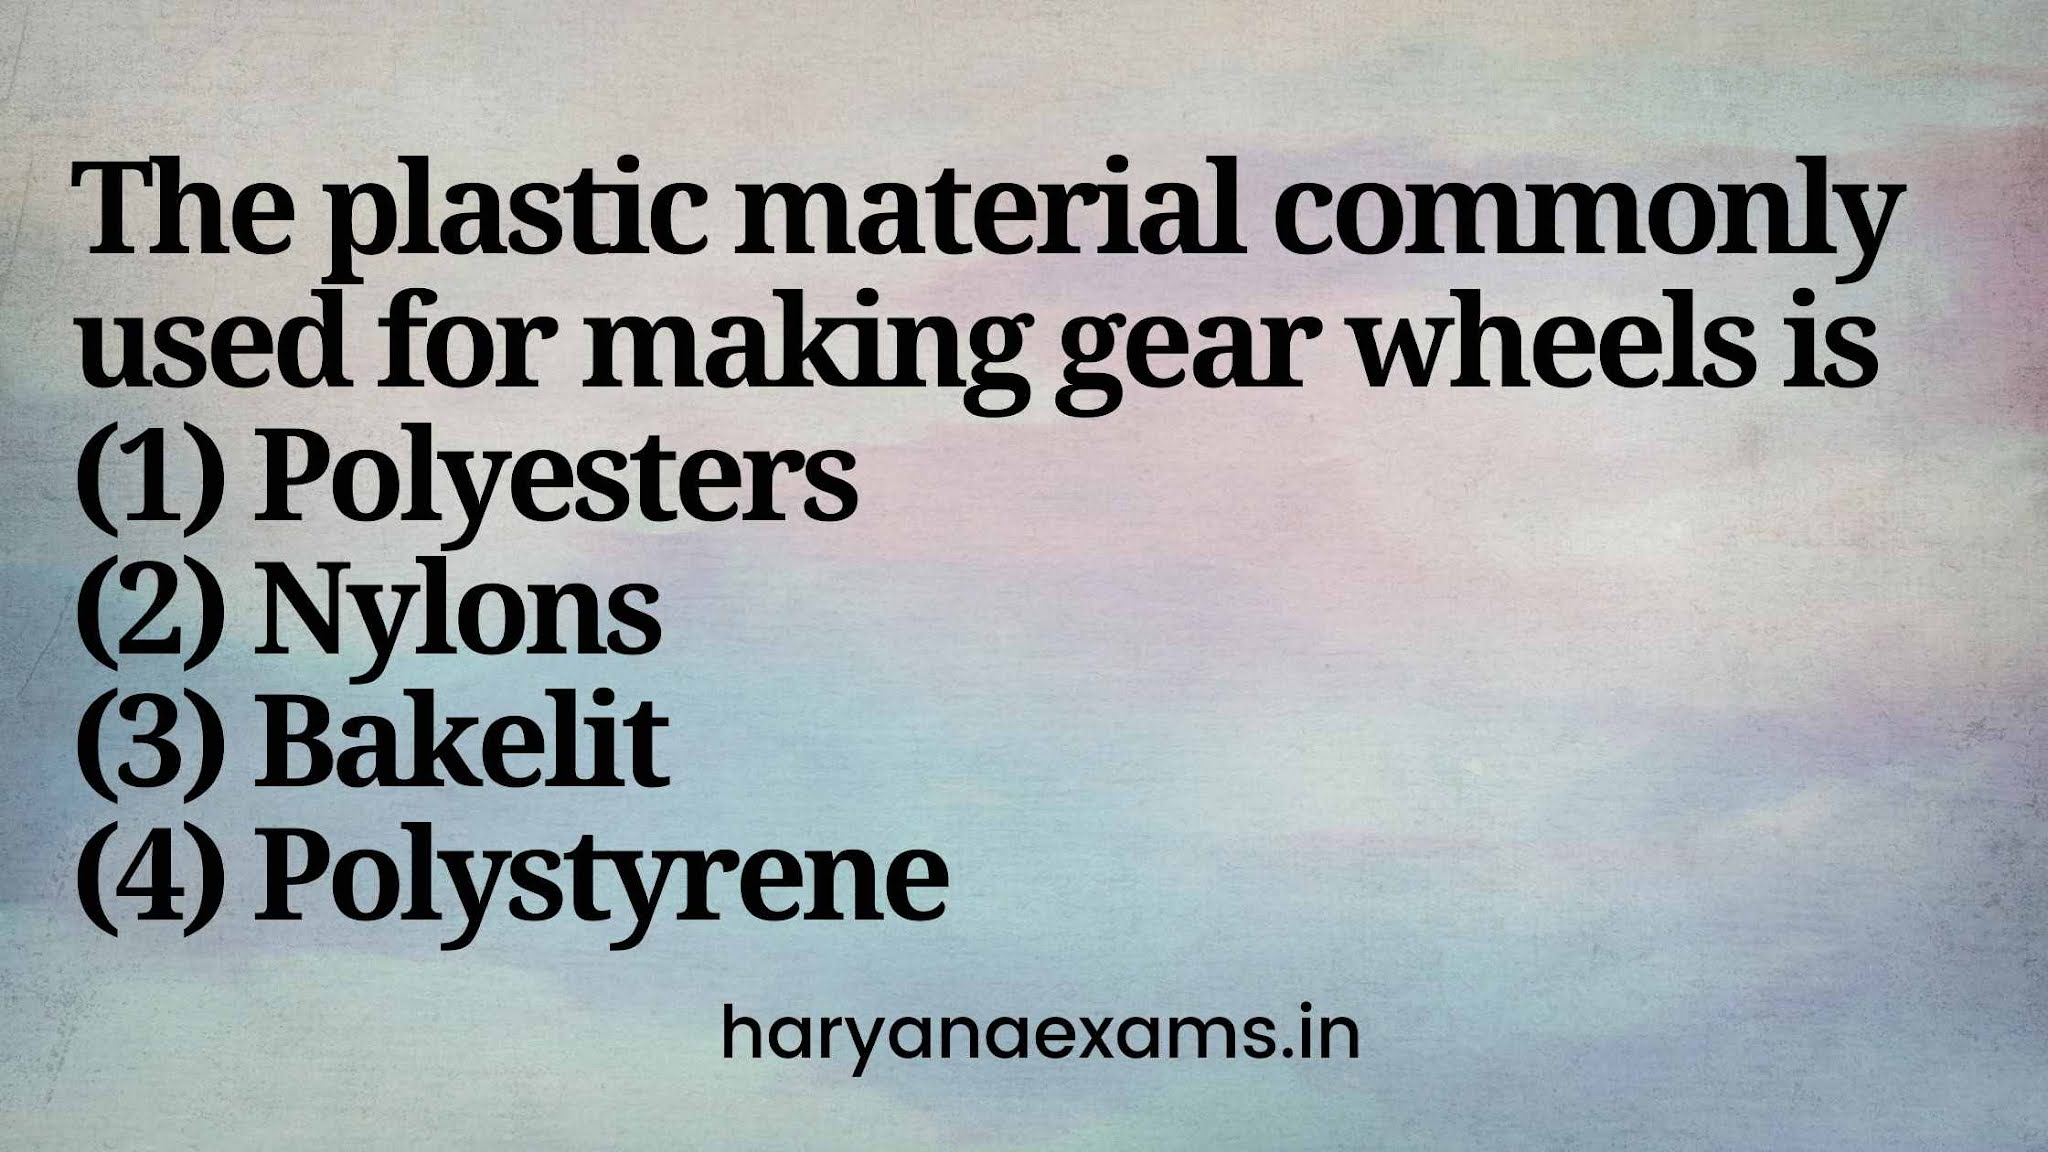 The plastic material commonly used for making gear wheels is   (1) Polyesters   (2) Nylons   (3) Bakelit   (4) Polystyrene